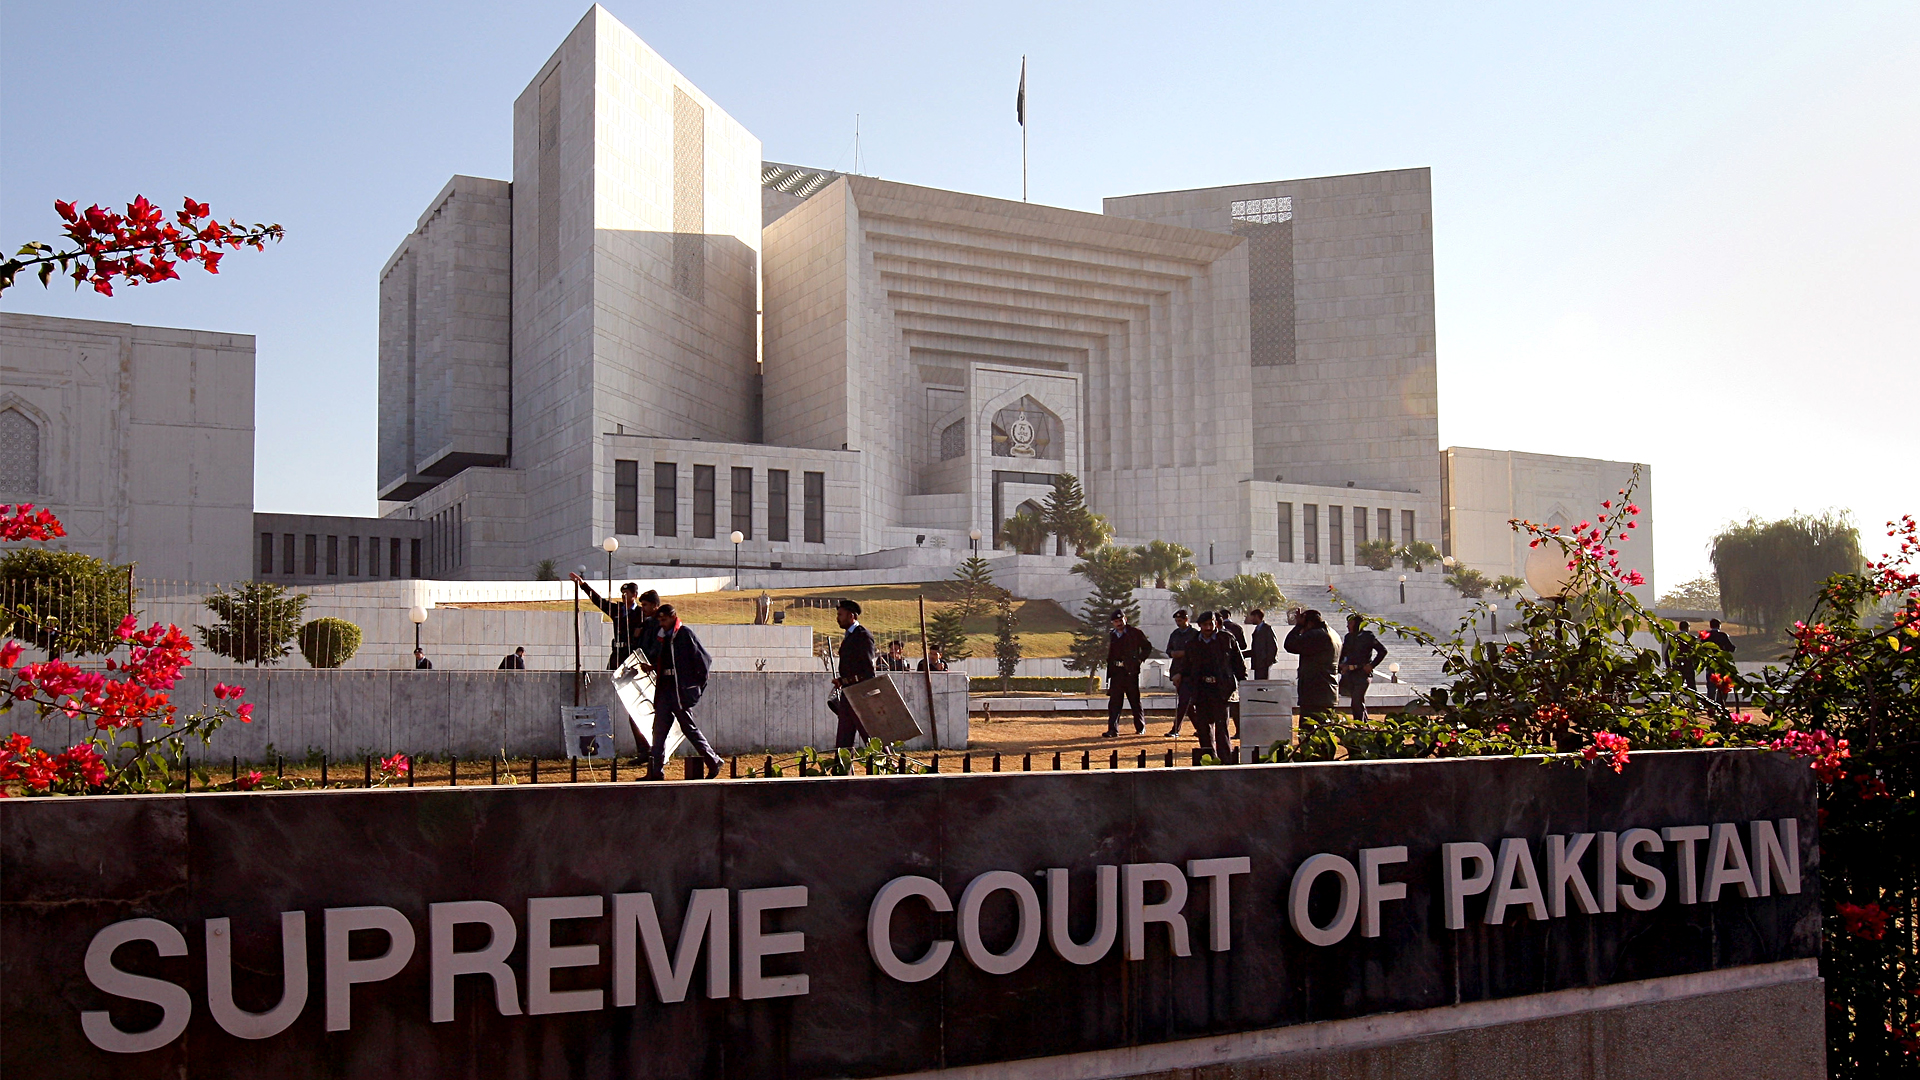 Pakistan Supreme Court Orders Government to Rebuild Destroyed Hindu Temple